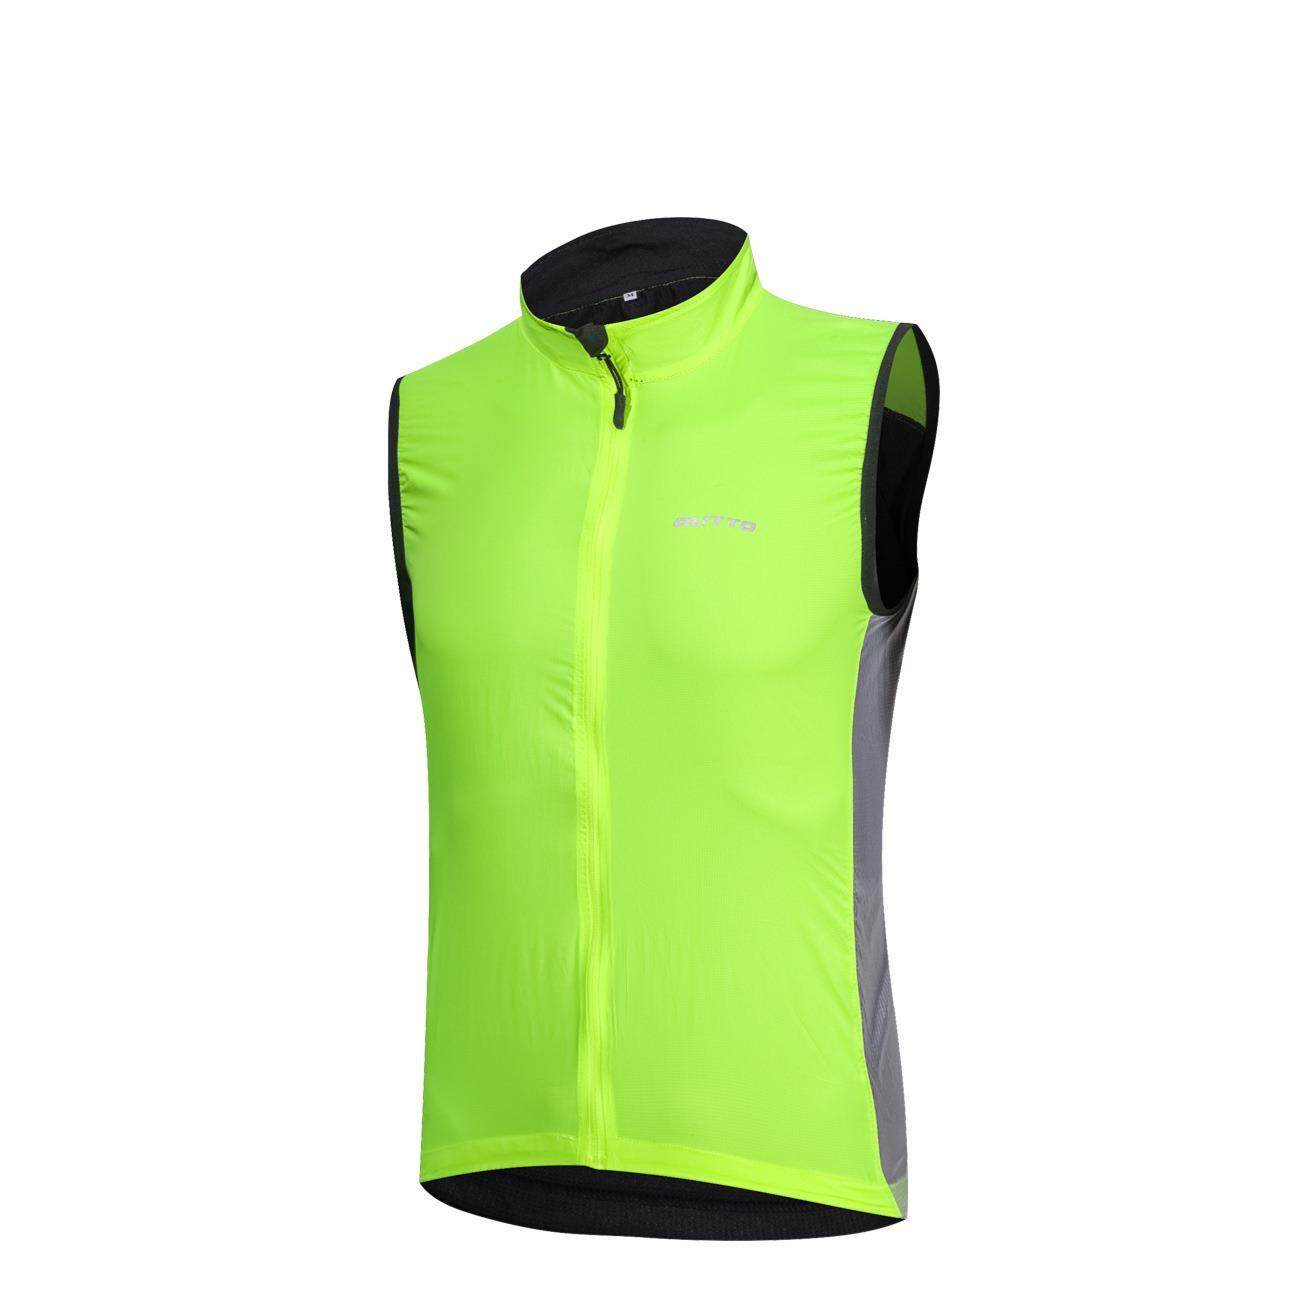 Mens Fluorescent Green Riding Outdoor Windproof Breathable Rain Night Vision Reflective Sleeveless Vest By Wellsunny.